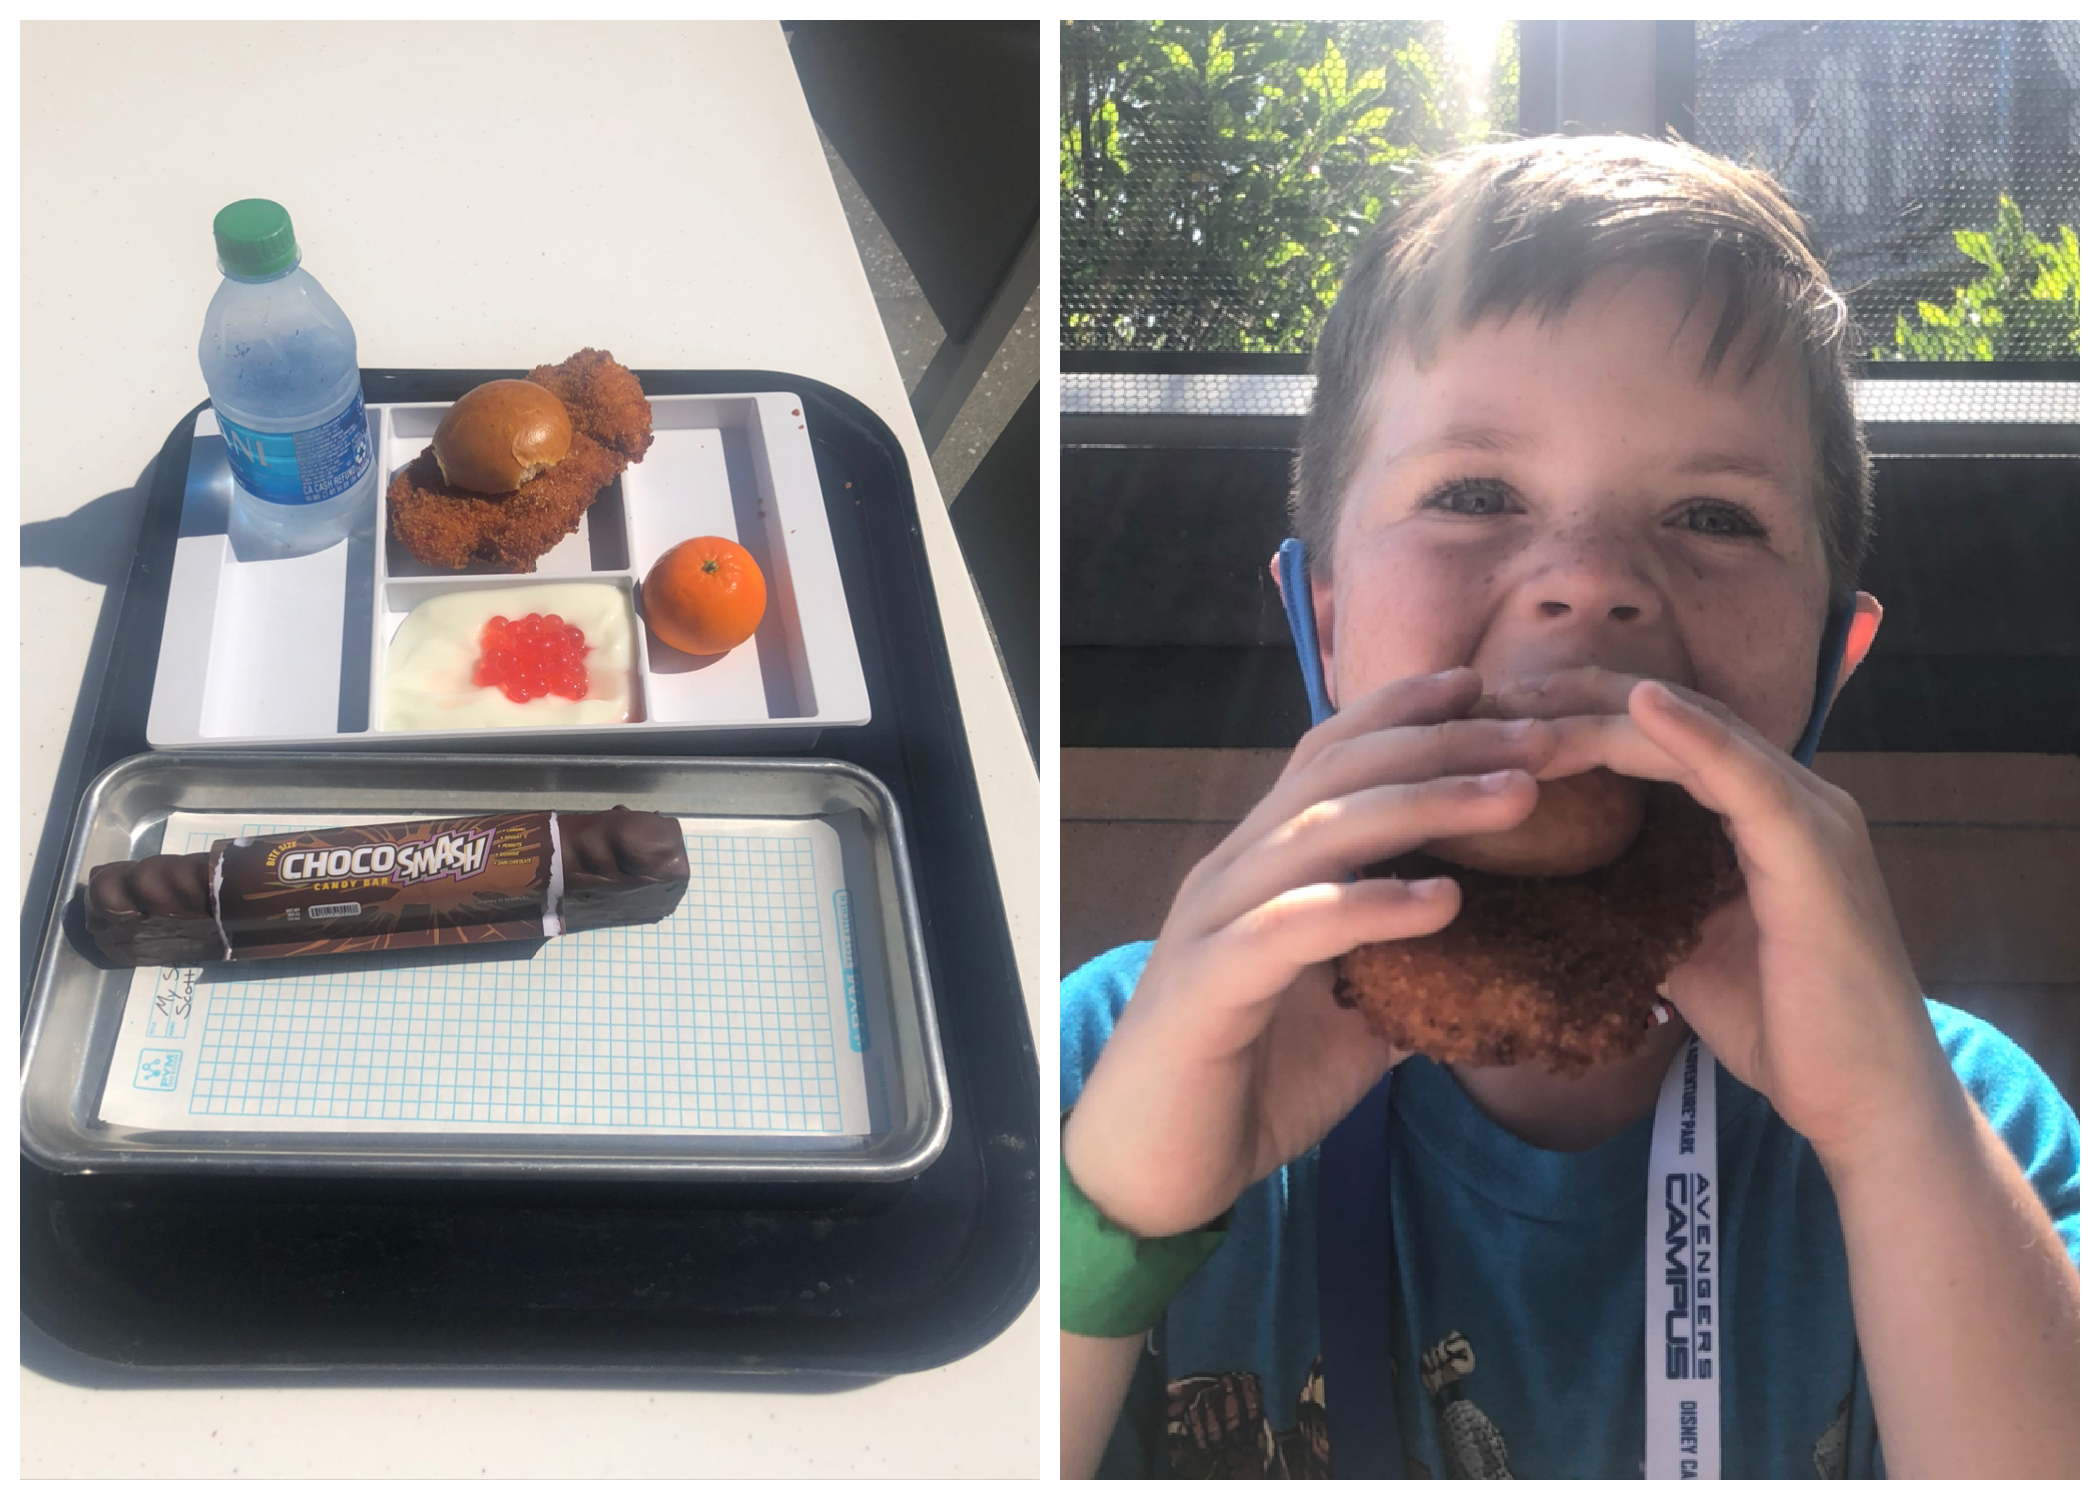 The child's meal next to a photo of James eating the sandwich